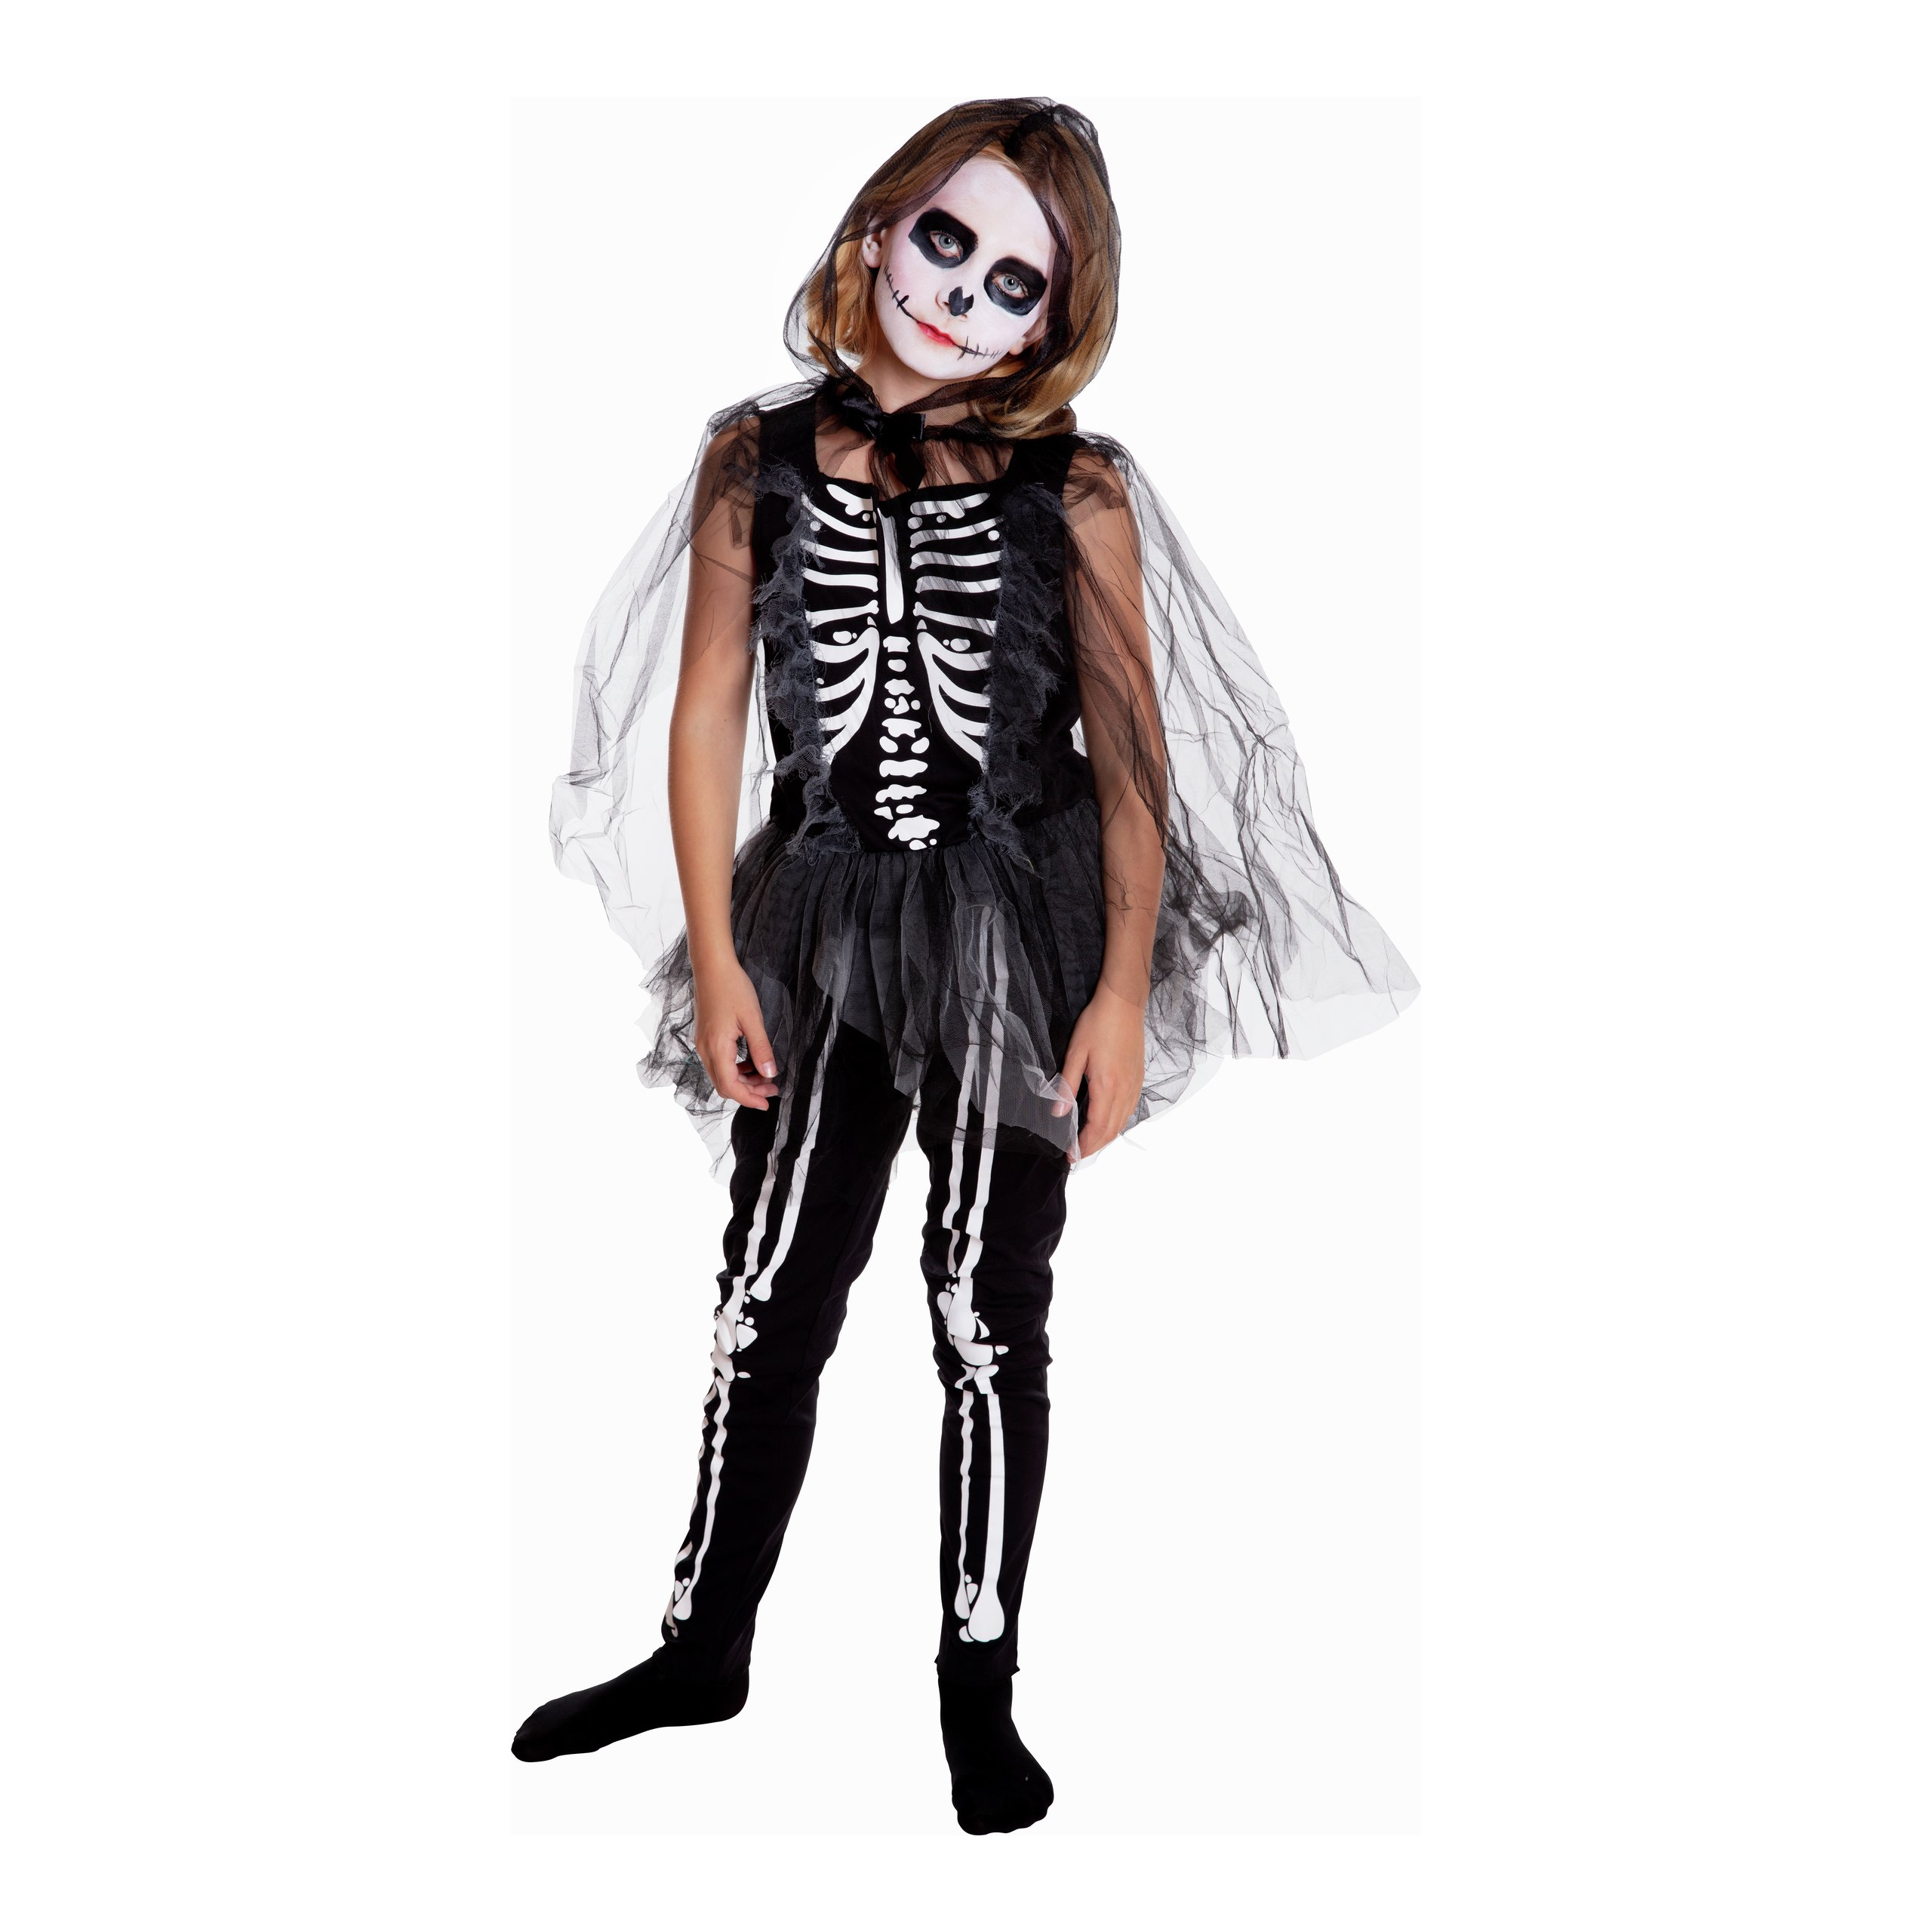 KOSTYME HALLOWEEN SKJELETT KJOLE/TIGHTS 130-140-102545